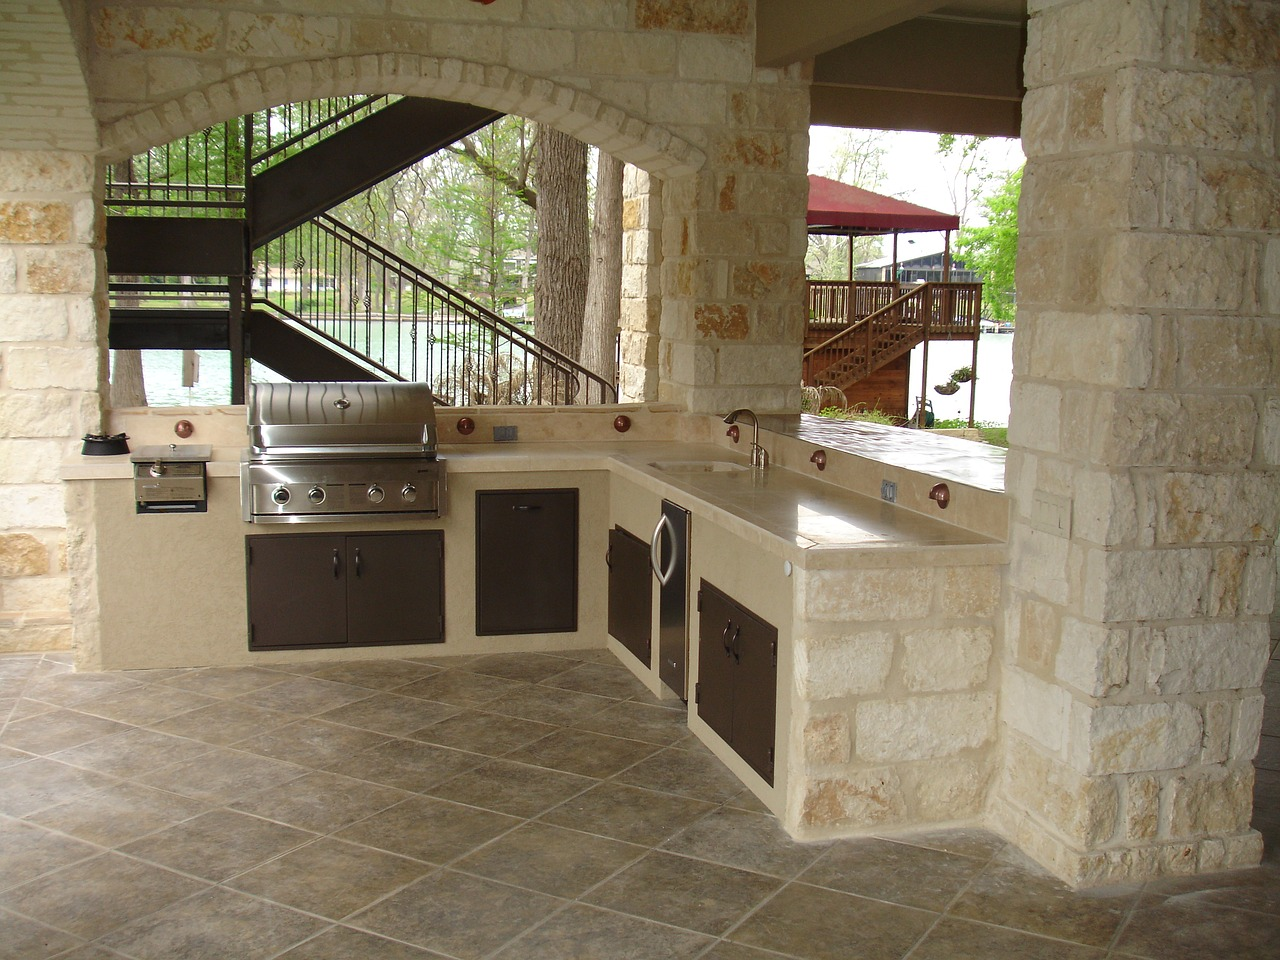 outdoor kitchens are unique per each space available - it gives the opportunity for homeowners to be creative with their design and material used.